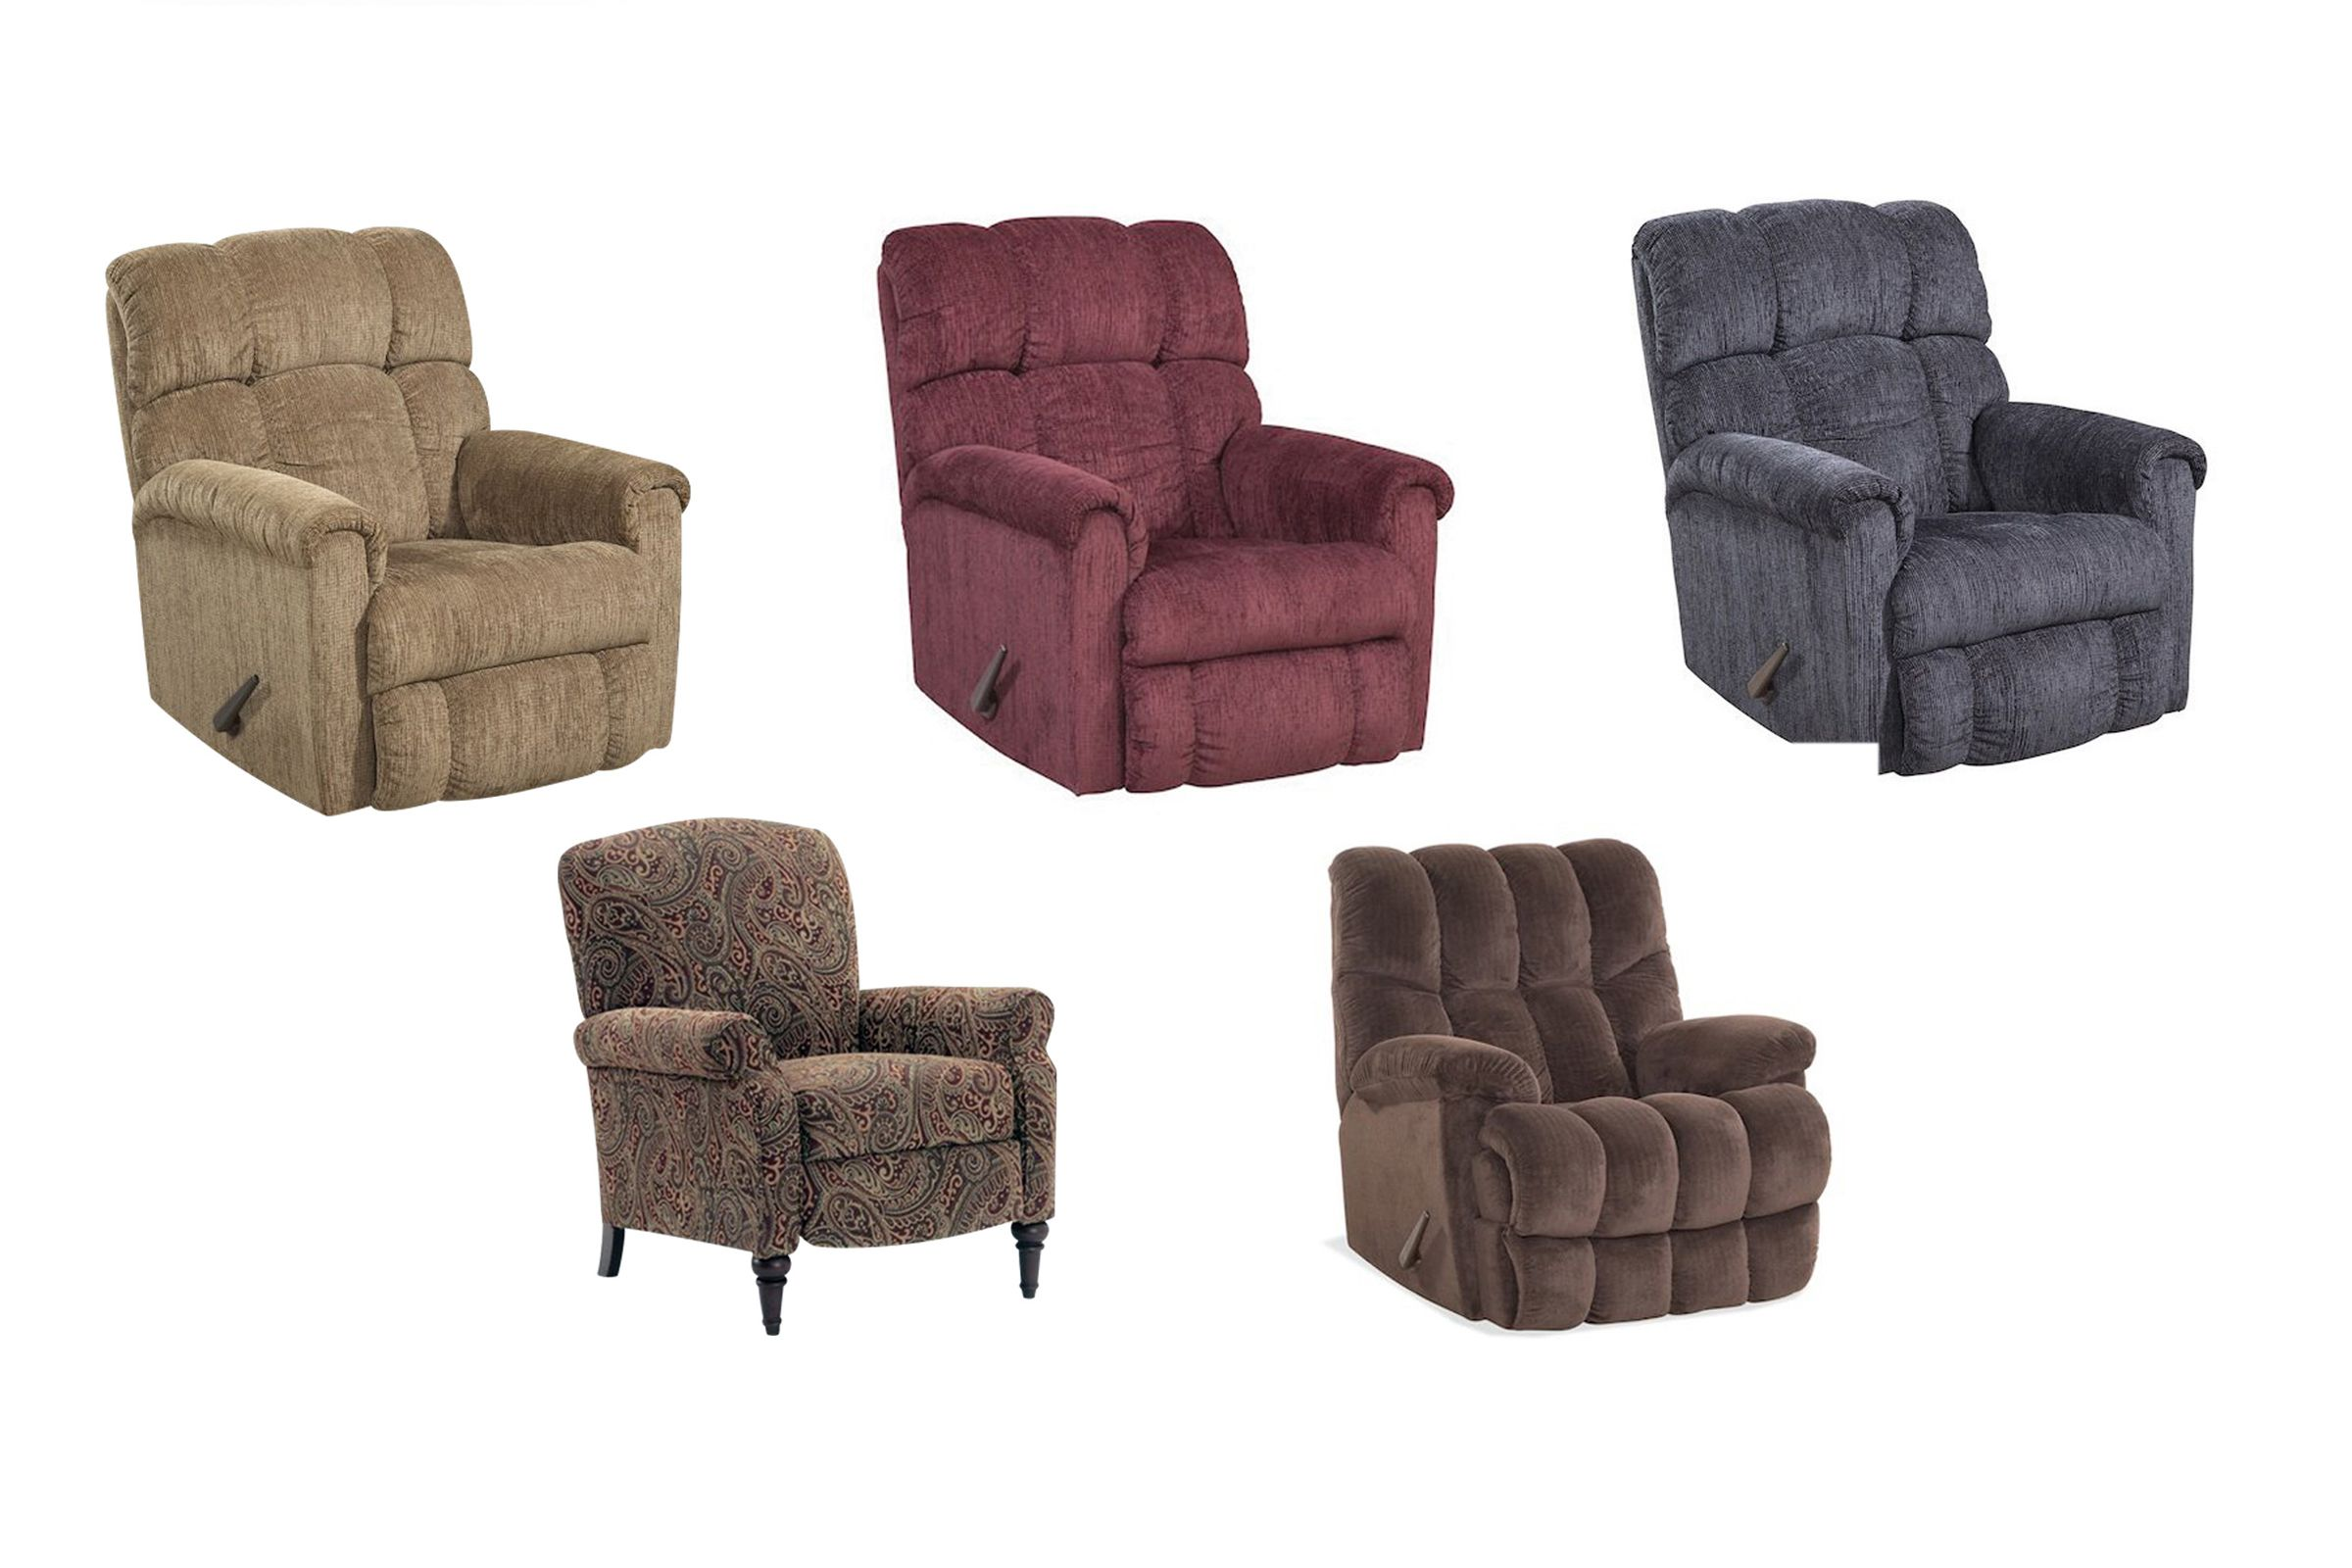 sc 1 st  Gardner-White Furniture & Homestretch Recliners Living Room Collection islam-shia.org